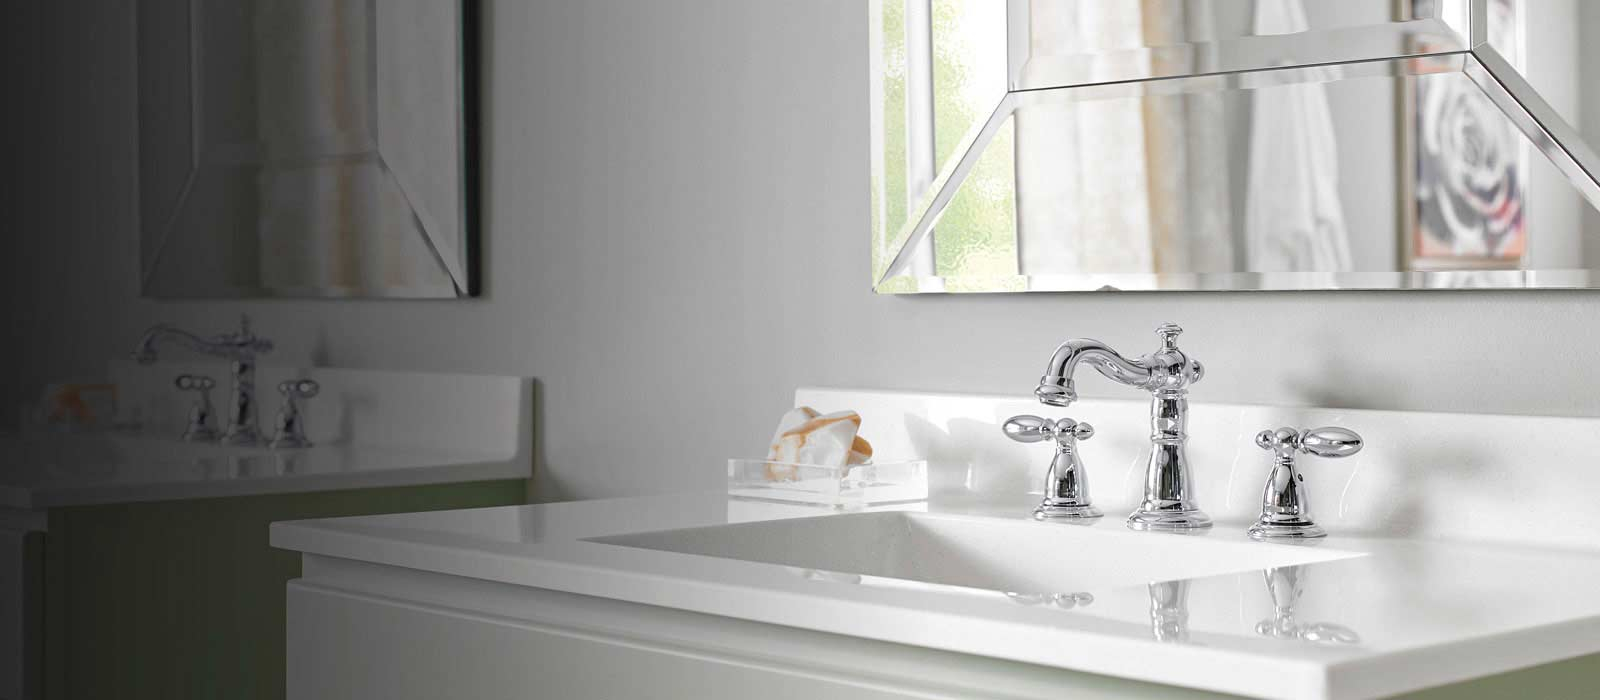 Amazing Victorian® Bathroom Collection | Delta Faucet within New Victorian Bathroom Faucet